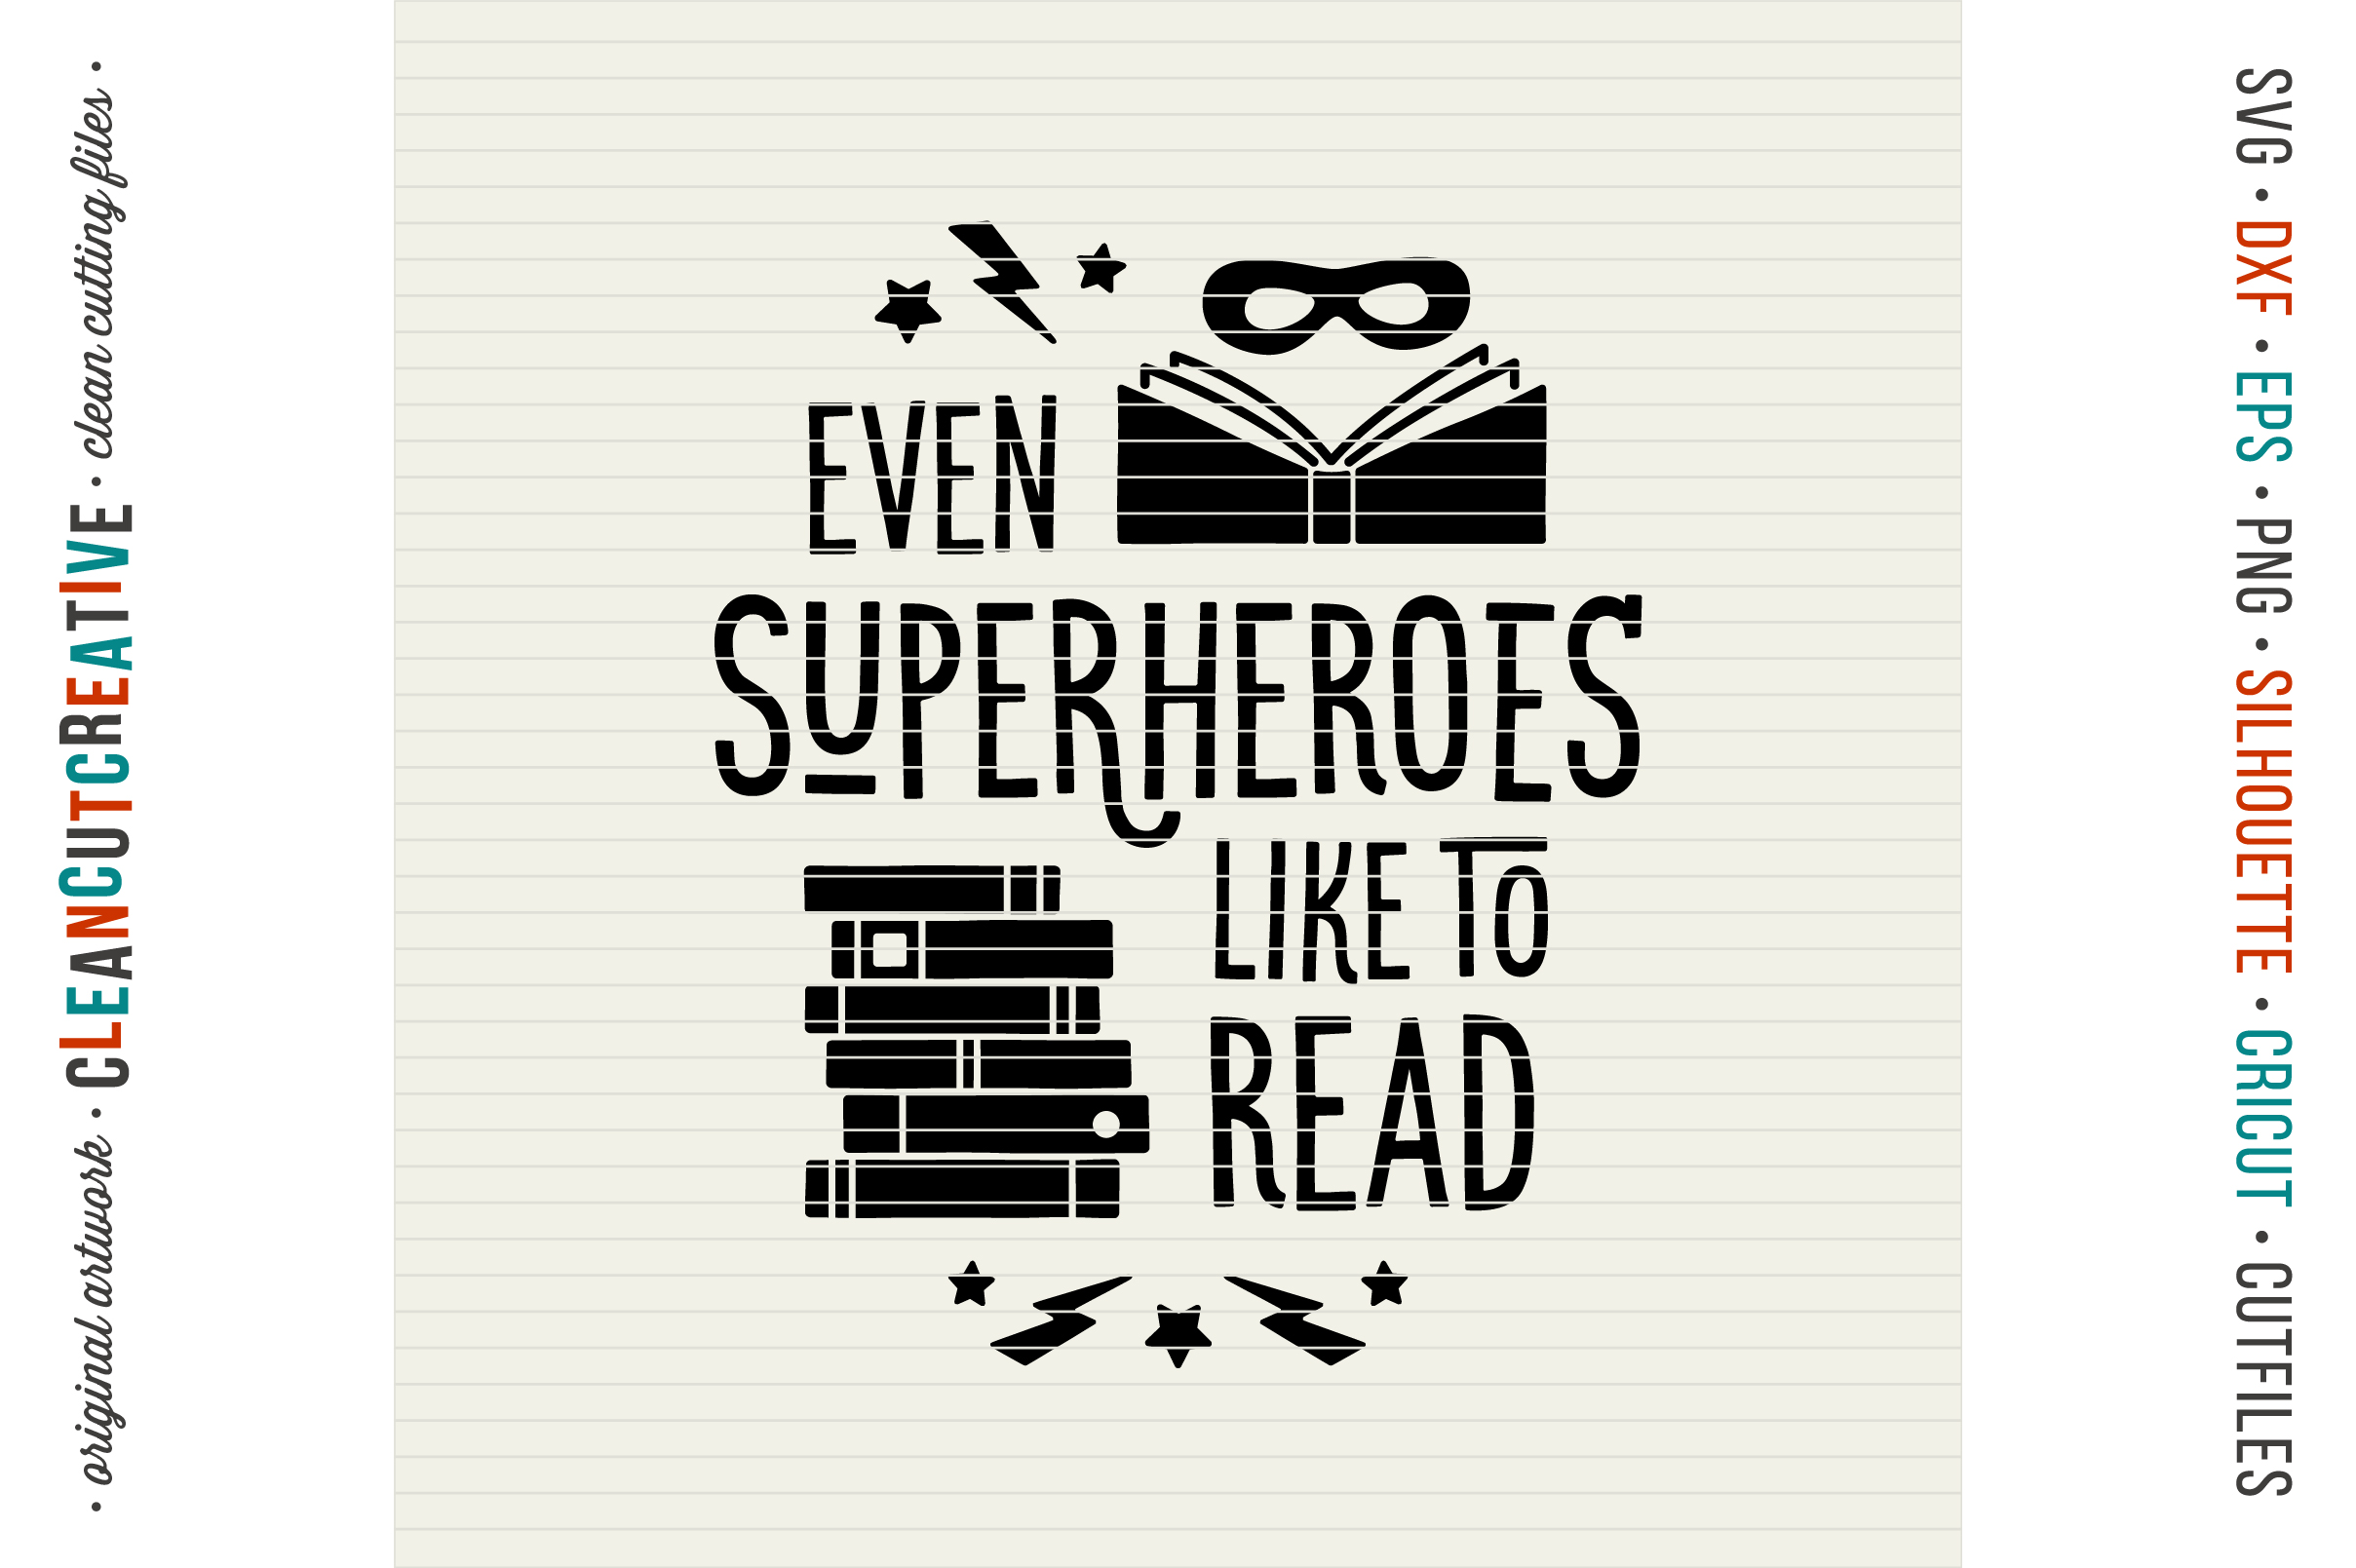 Even SUPERHEROES like to READ! - Cricut Silhouette cut file example image 3